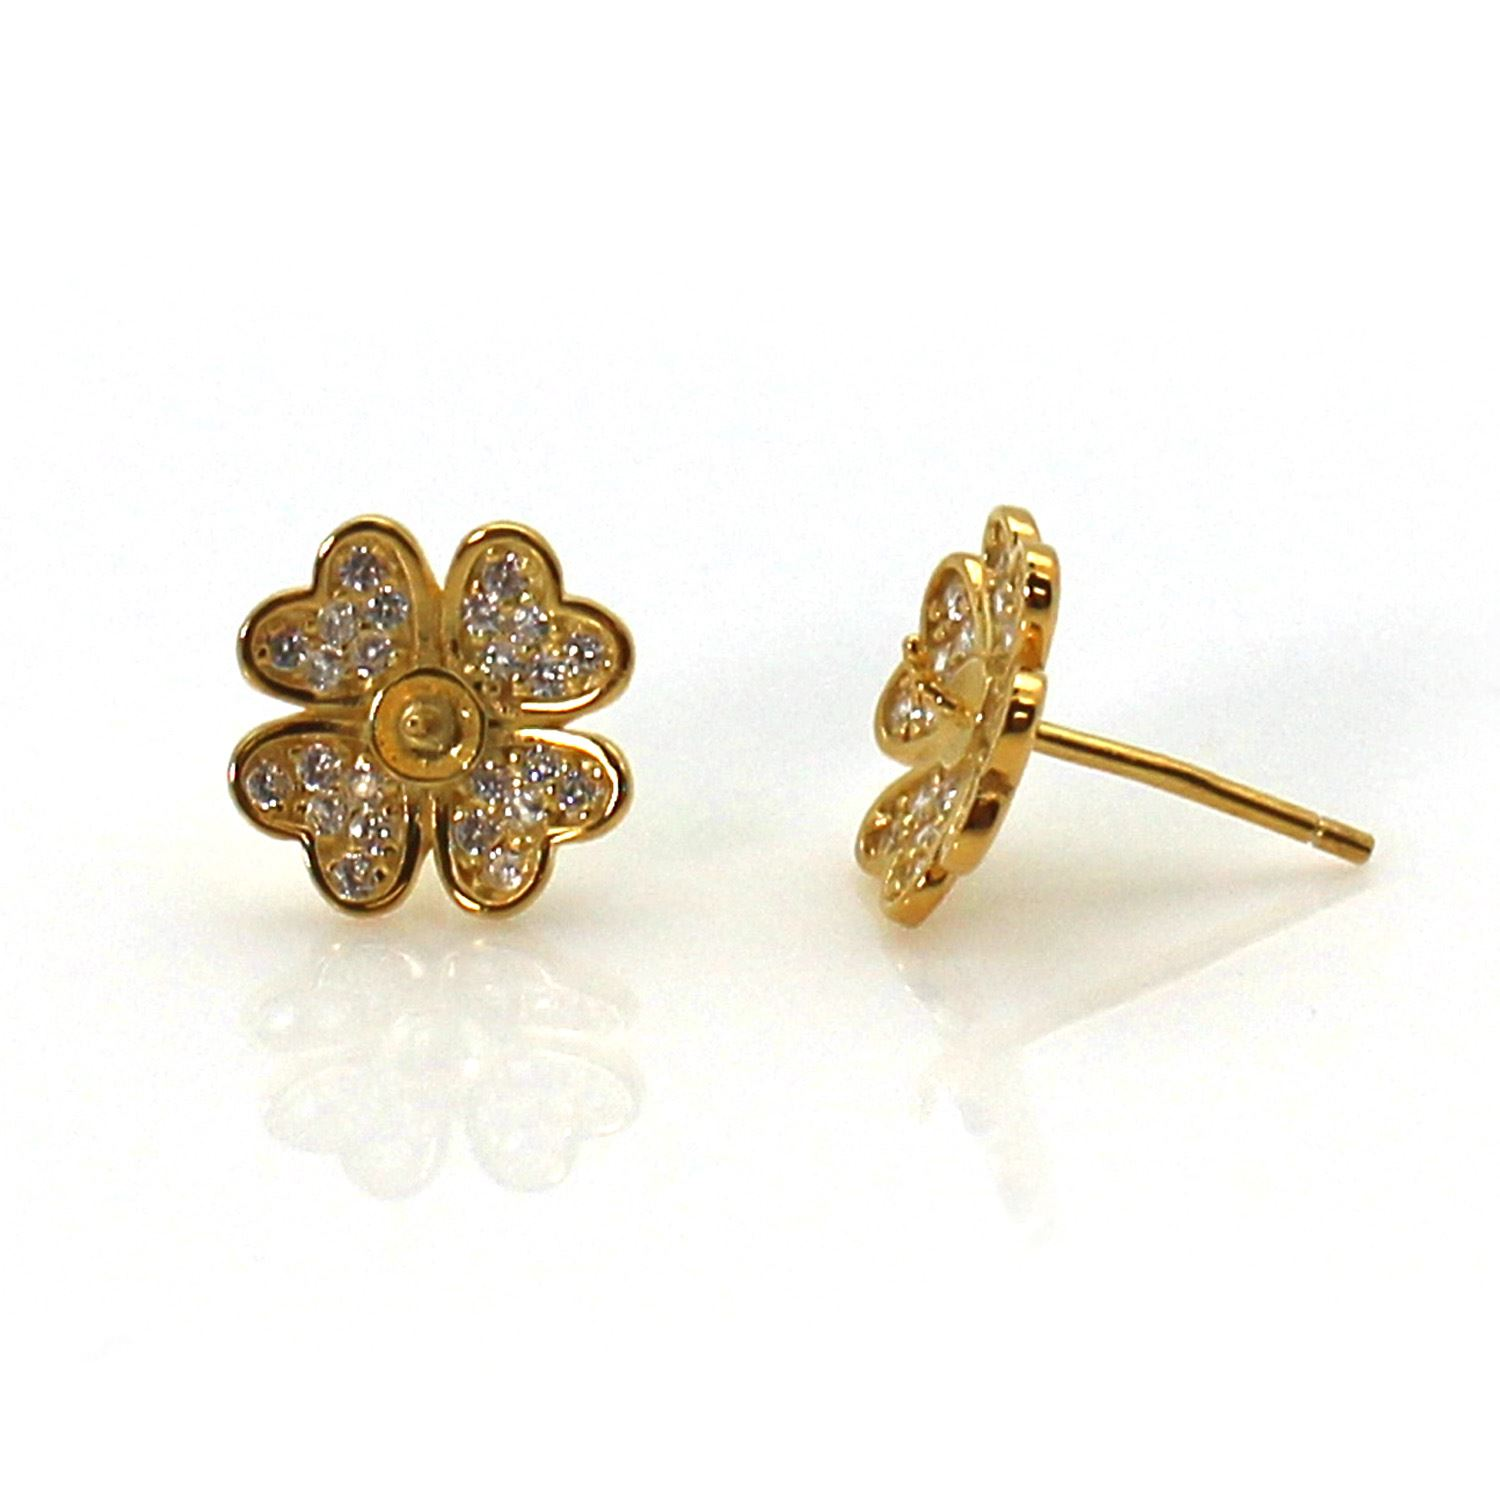 Gold Plated Sterling Silver Earring Findings, Pearl Stud Findings-CZ Cubic Zirconia Stone, Flower Earwire with Peg Bail, Bridal Earrings (1 pair)